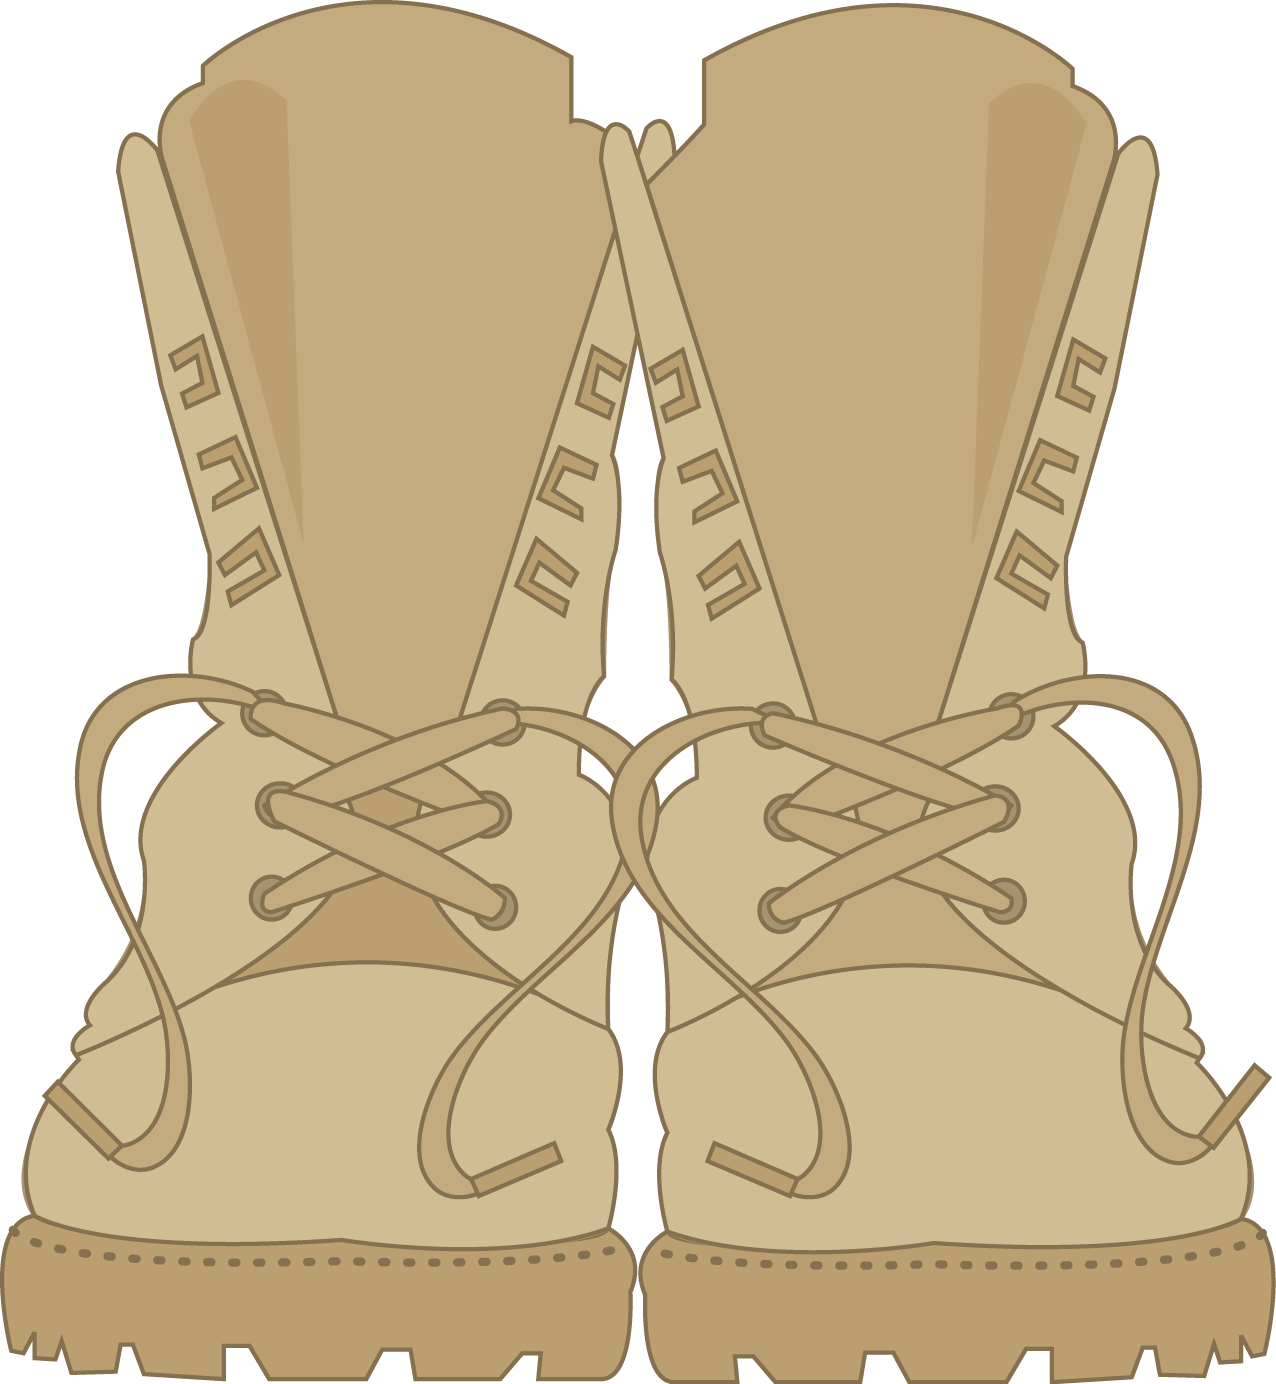 Boot clipart army boot. Photo by daniellemoraesfalcao minus